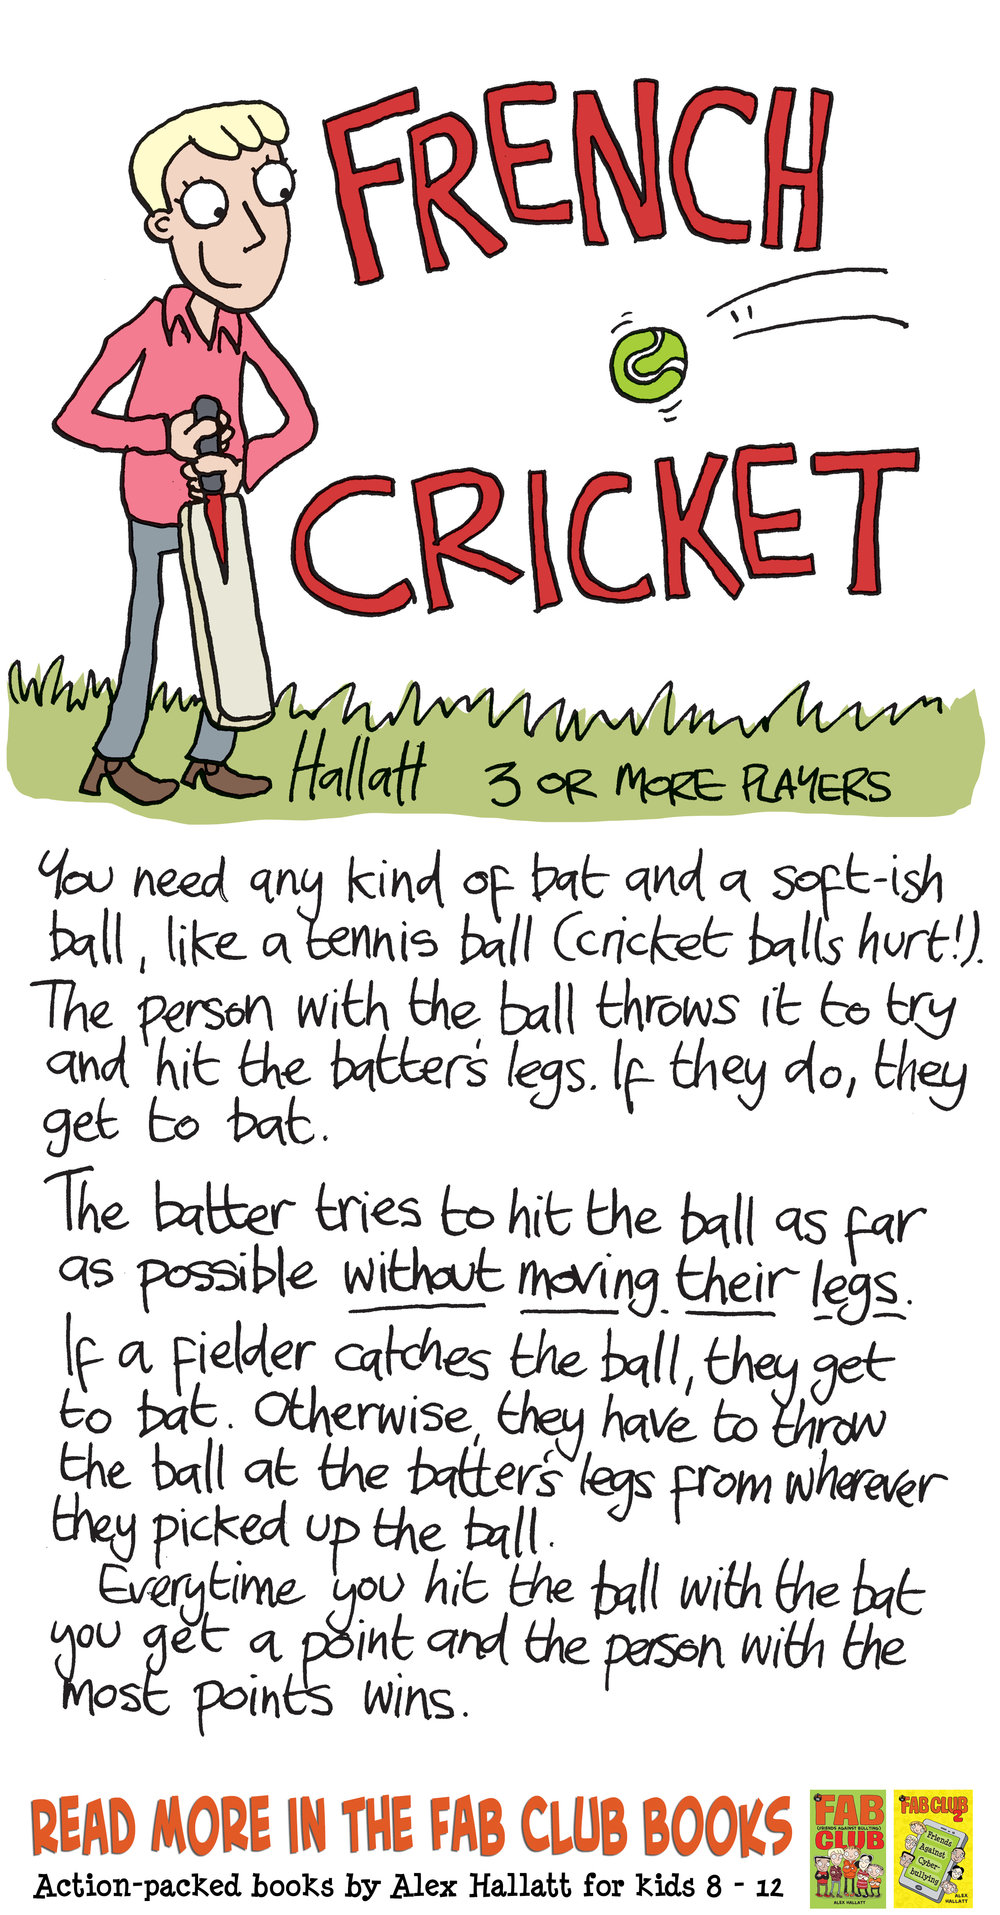 French cricket rules. for 3 or more players. You need any kind of bat and a soft ball like a tennis ball. The person with the ball throws it to try and hit the batter's legs. If they do they get to bat. the batter tries to hit the ball as far as possible without moving their legs. If a Fielder catches the ball they get to bat. Otherwise they have to throw the ball at the batter's legs from wherever they picked up the ball. Every time you hit the ball with the bat you get a point and the person with the most points wins.